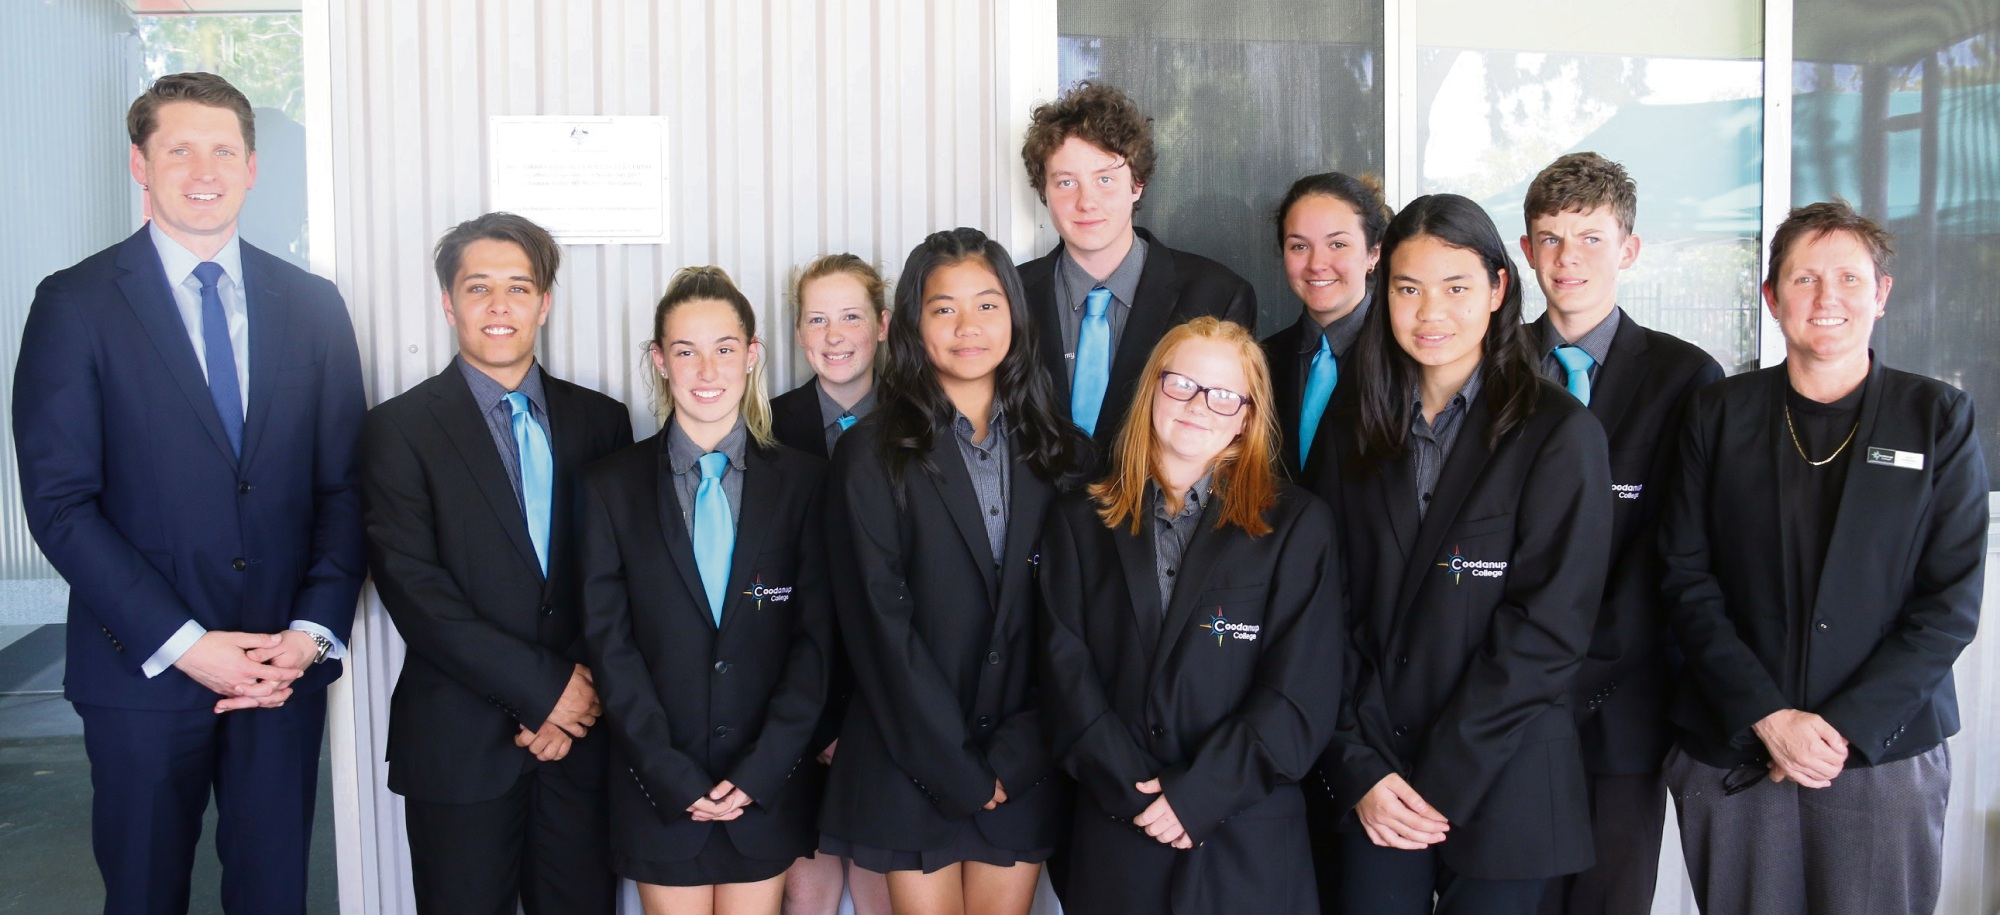 Andrew Hastie (far left) with students and principal Vicki McKeown (far right) at the trades skills centre opening.